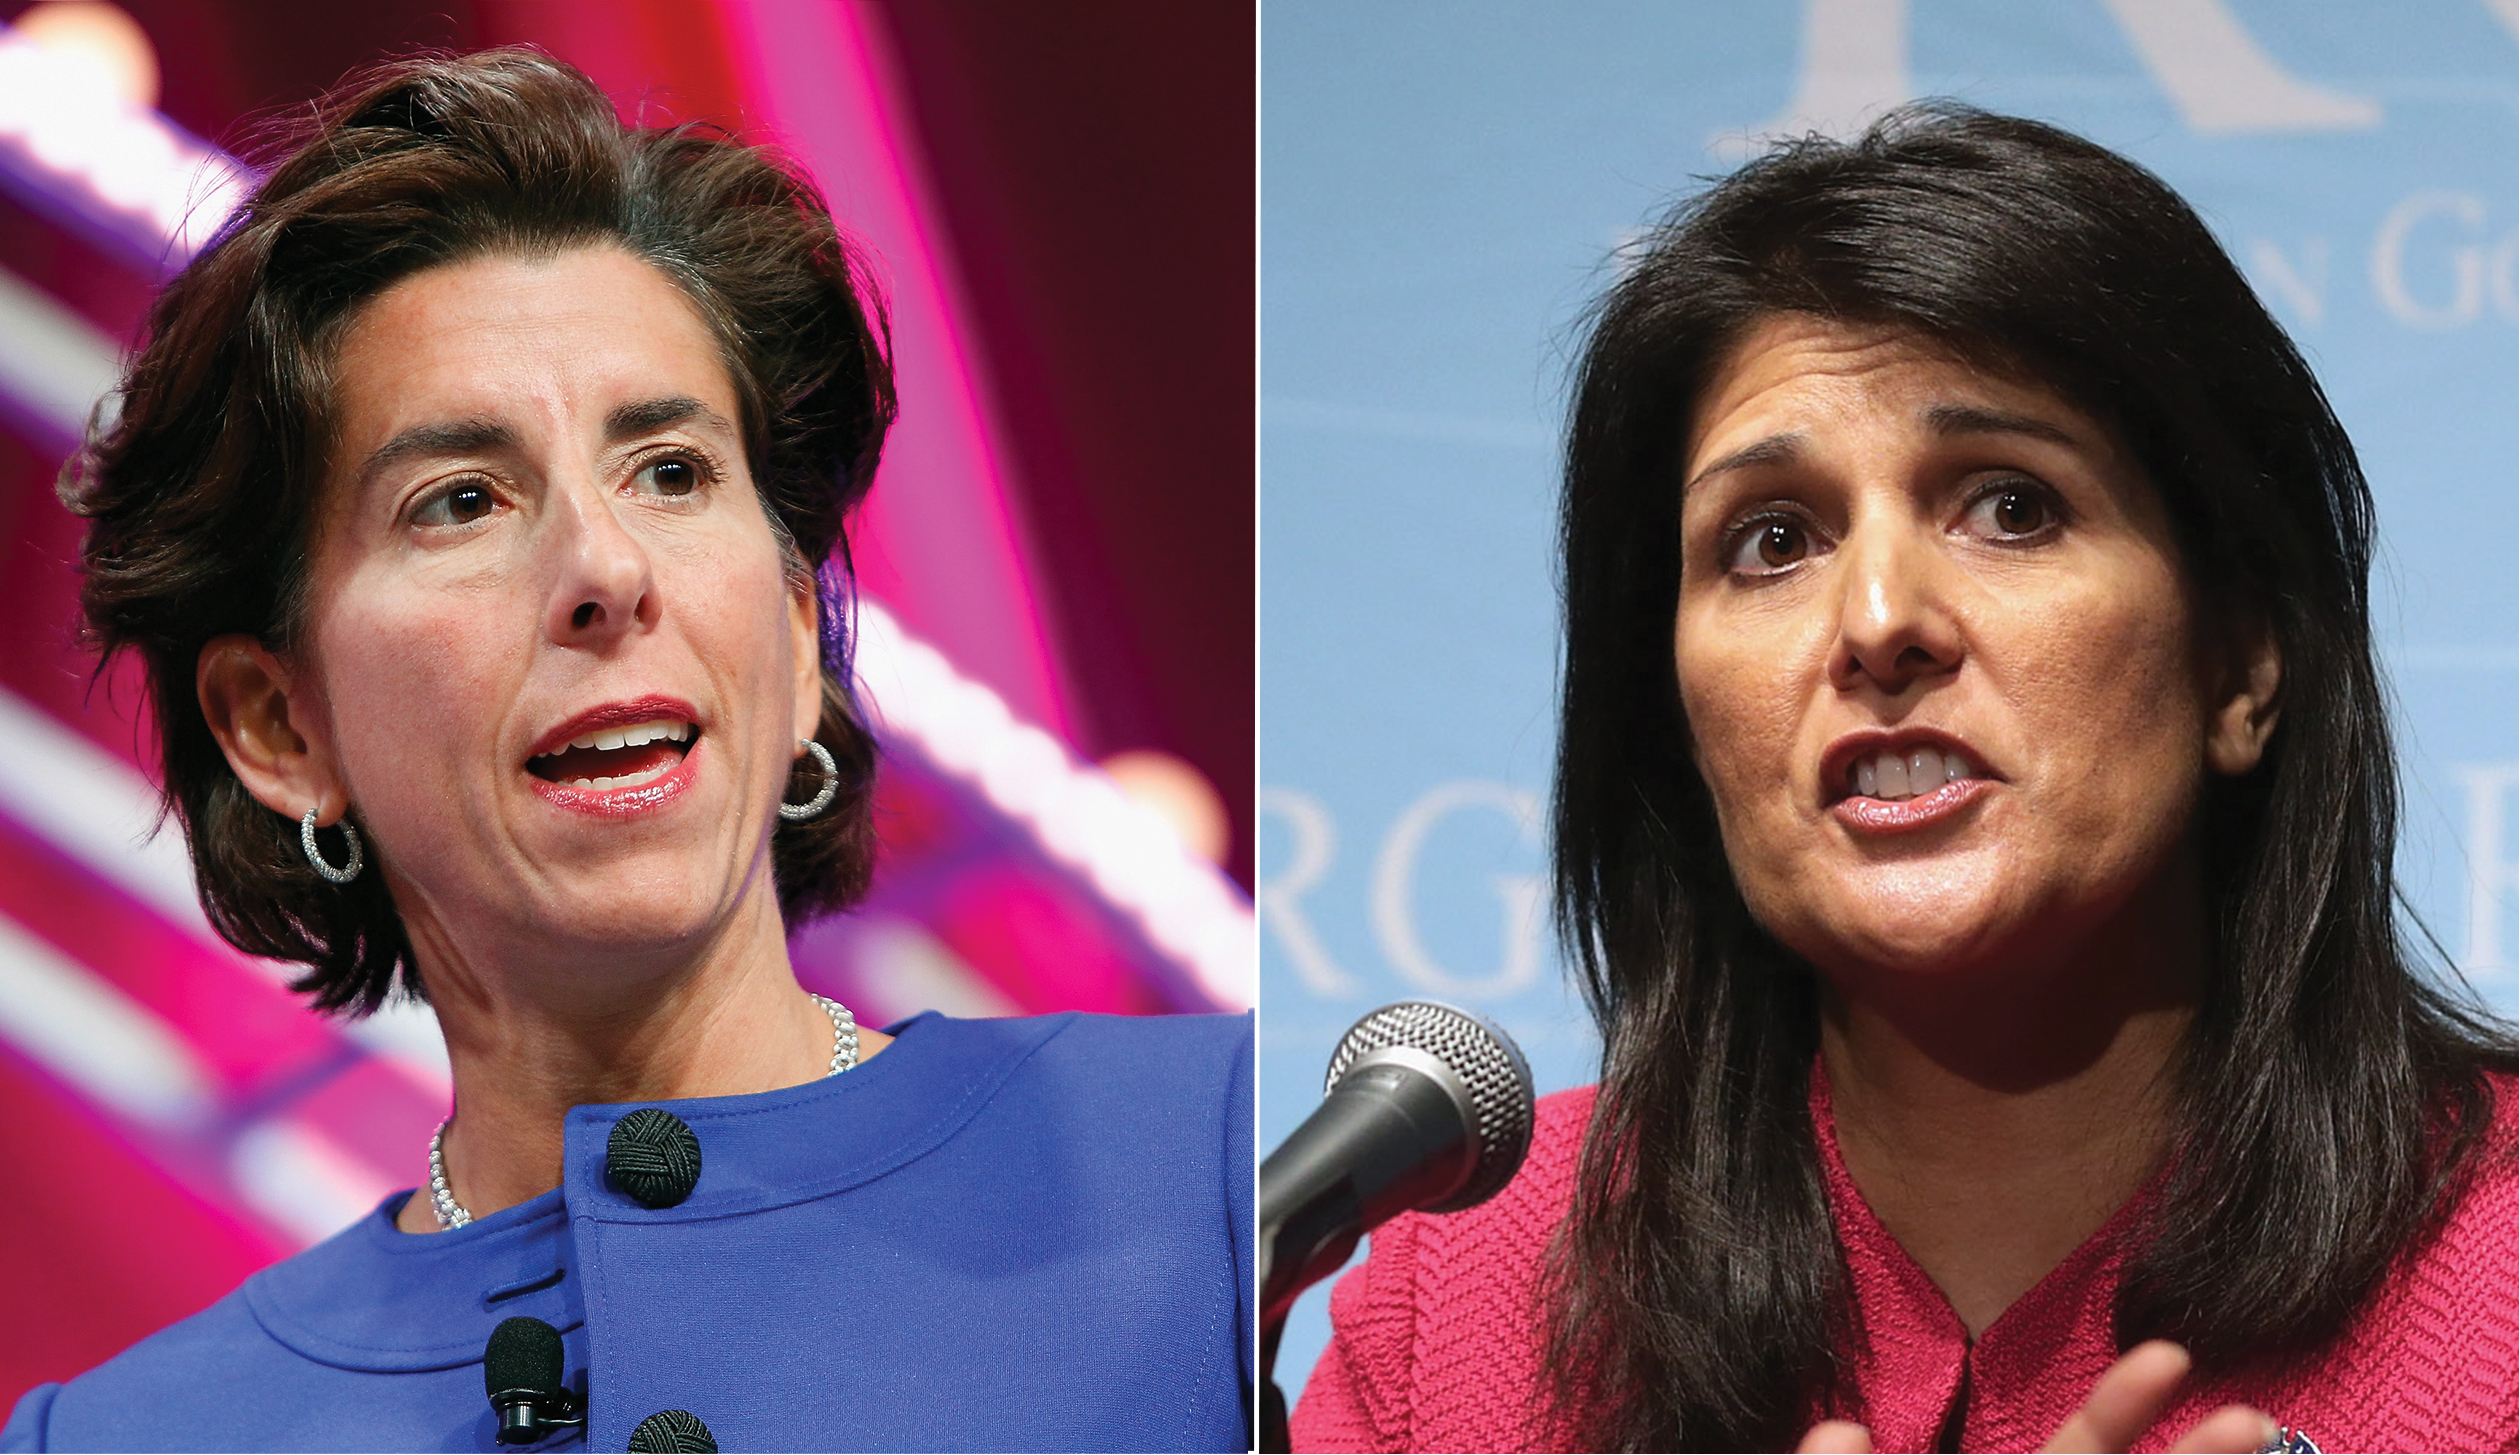 Rhode Island Gov. Gina Raimondo (left) and South Carolina Gov. Nikki Haley.